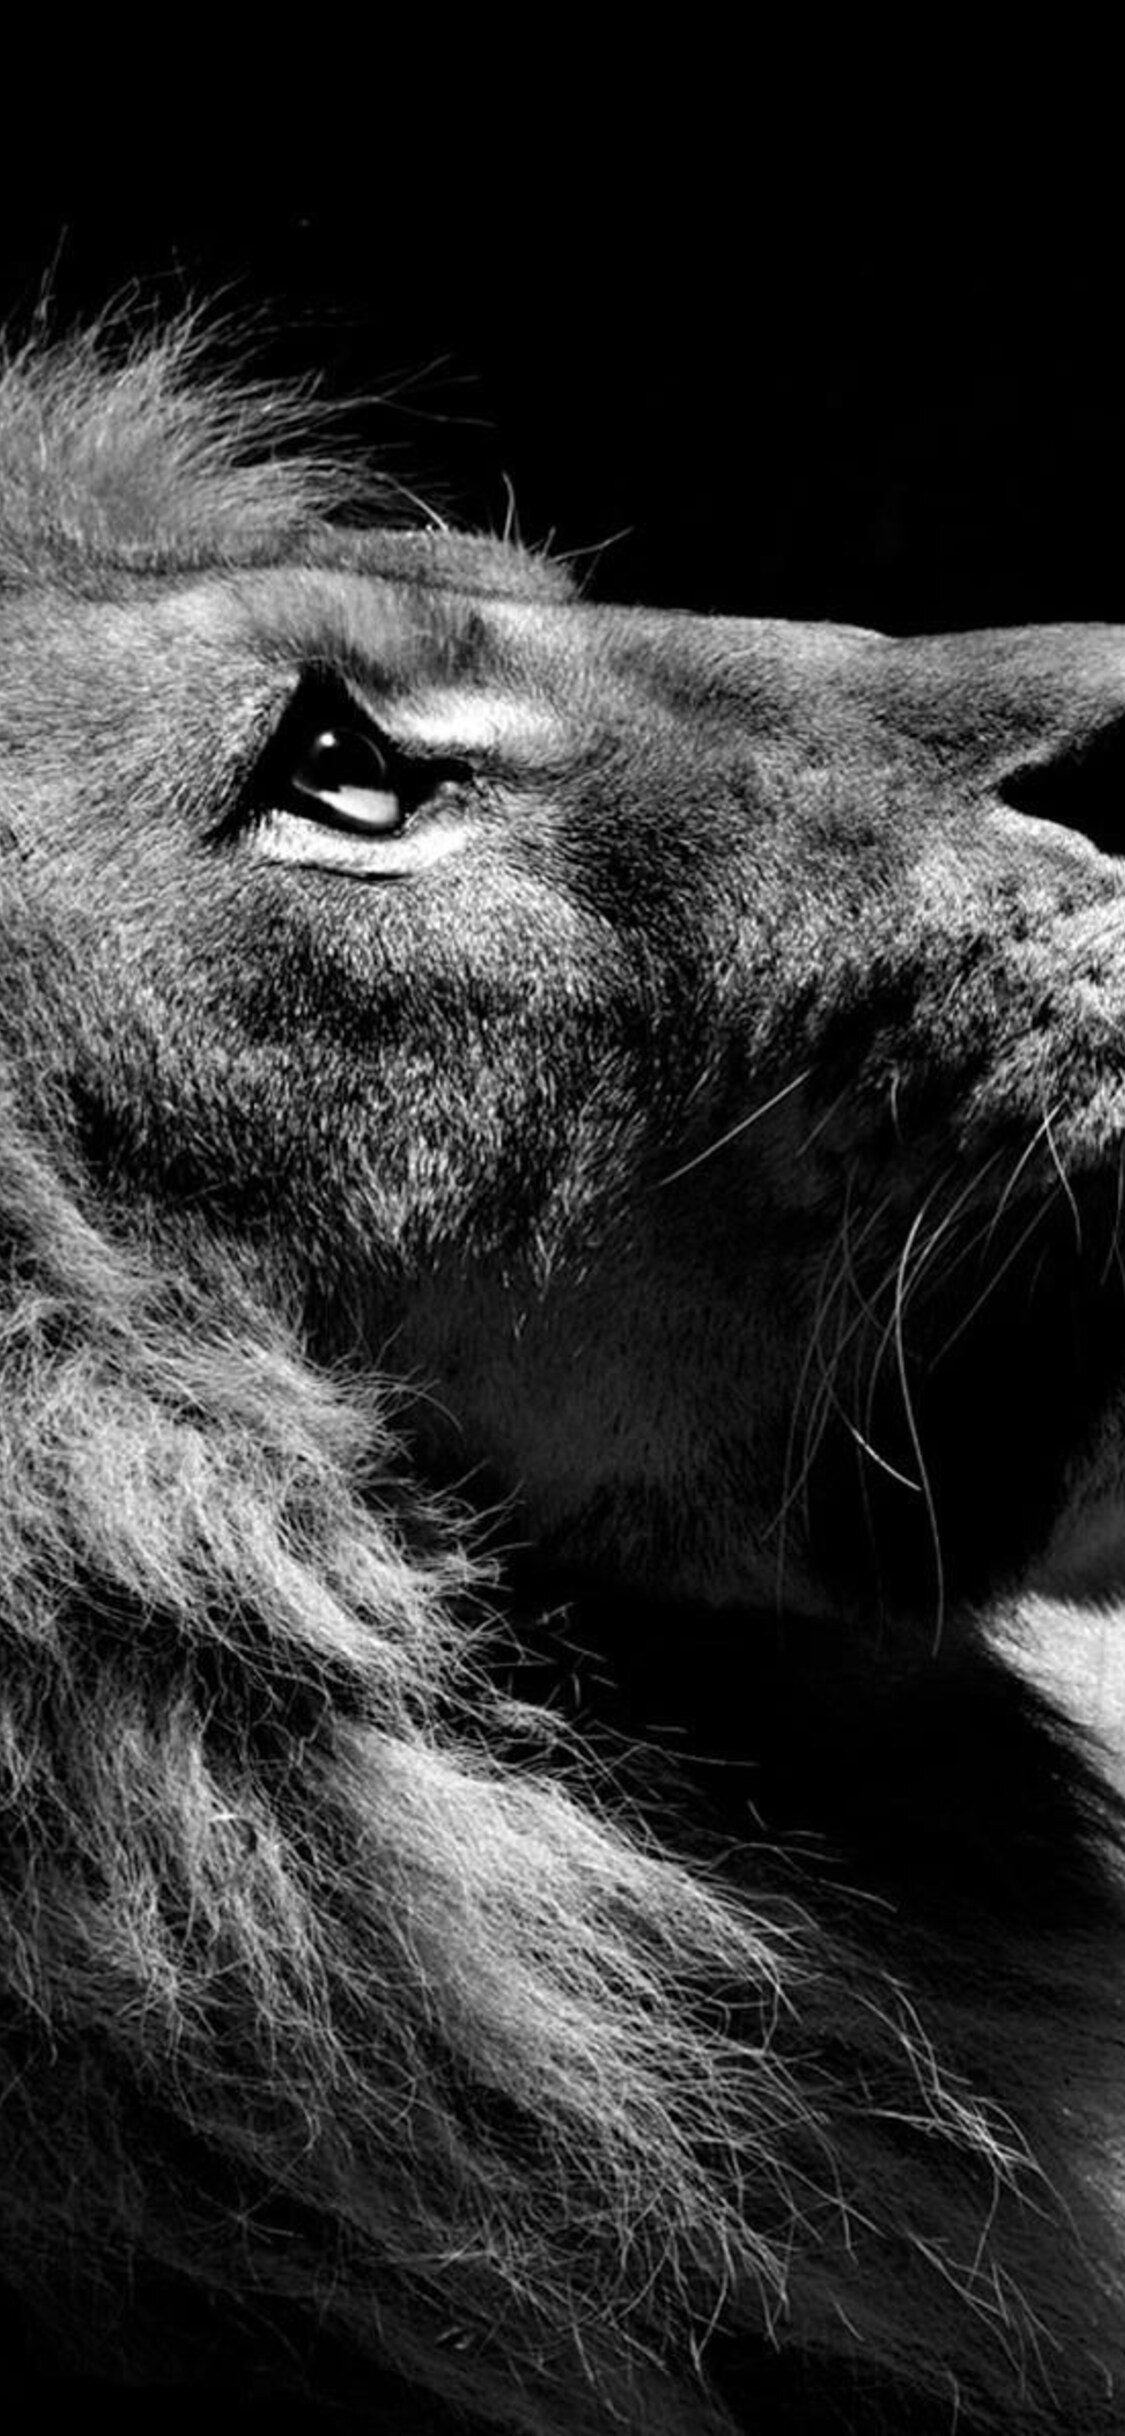 1125x2436 Lion Black And White Iphone Xs Iphone 10 Iphone X Hd 4k